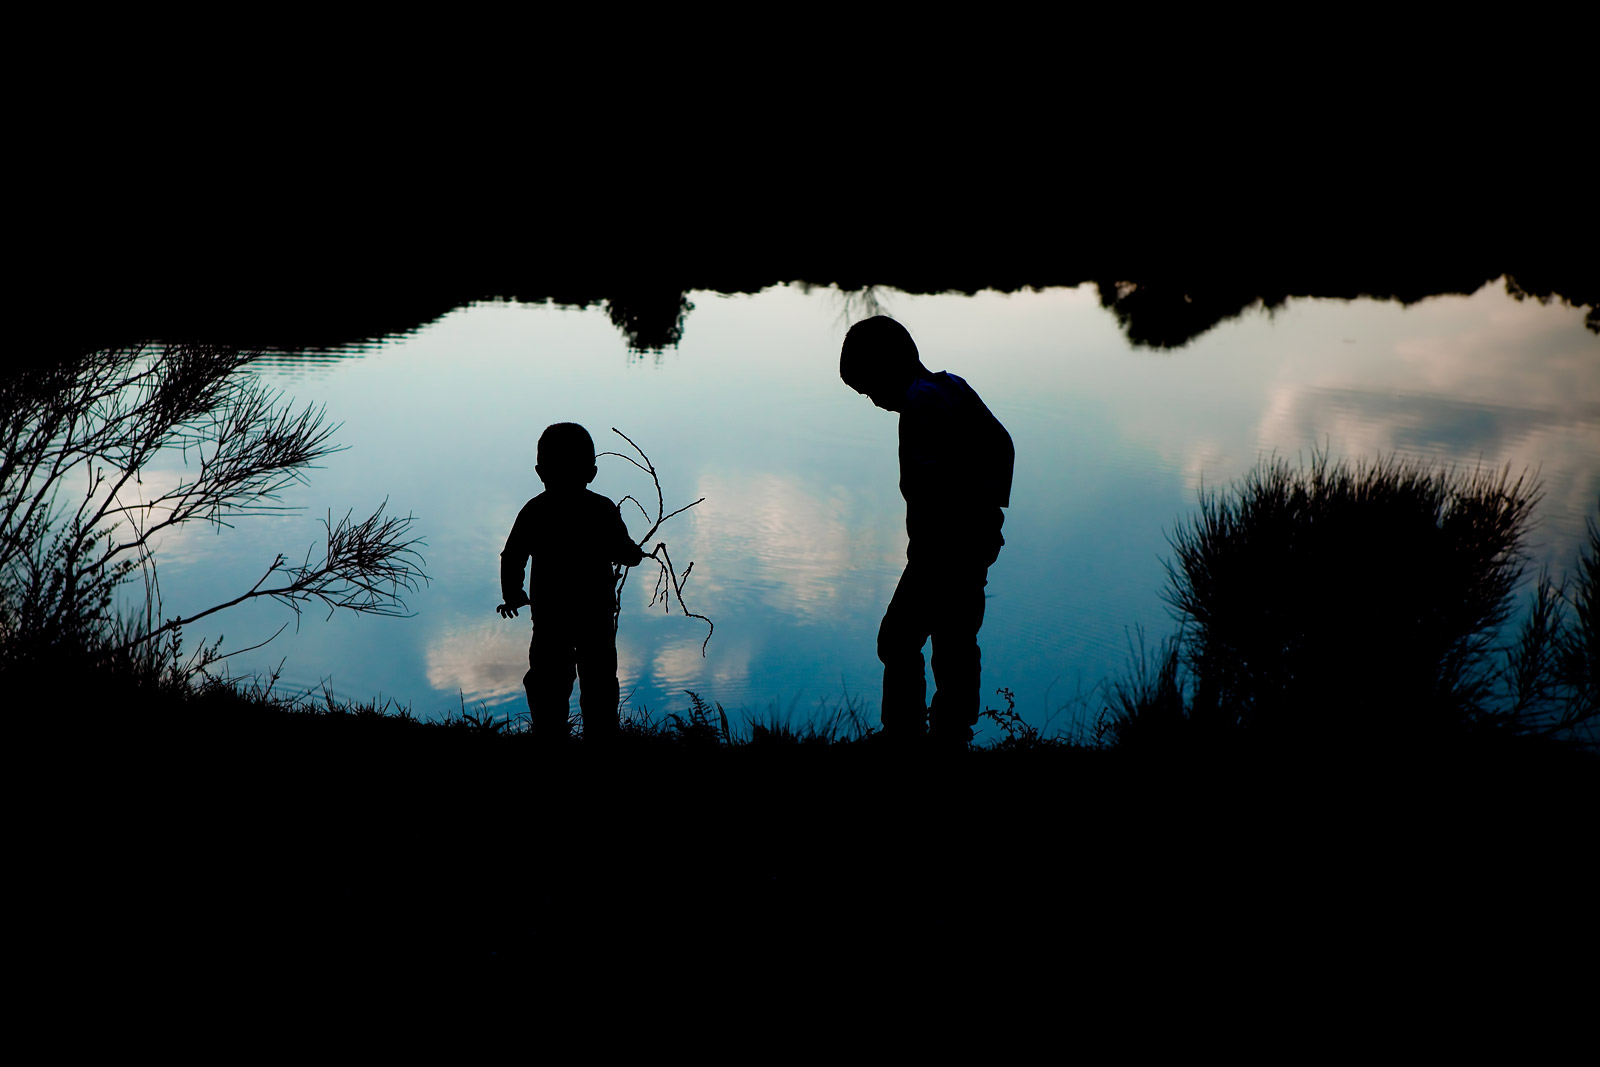 How to create a silhouette photo by Lisa Tichane